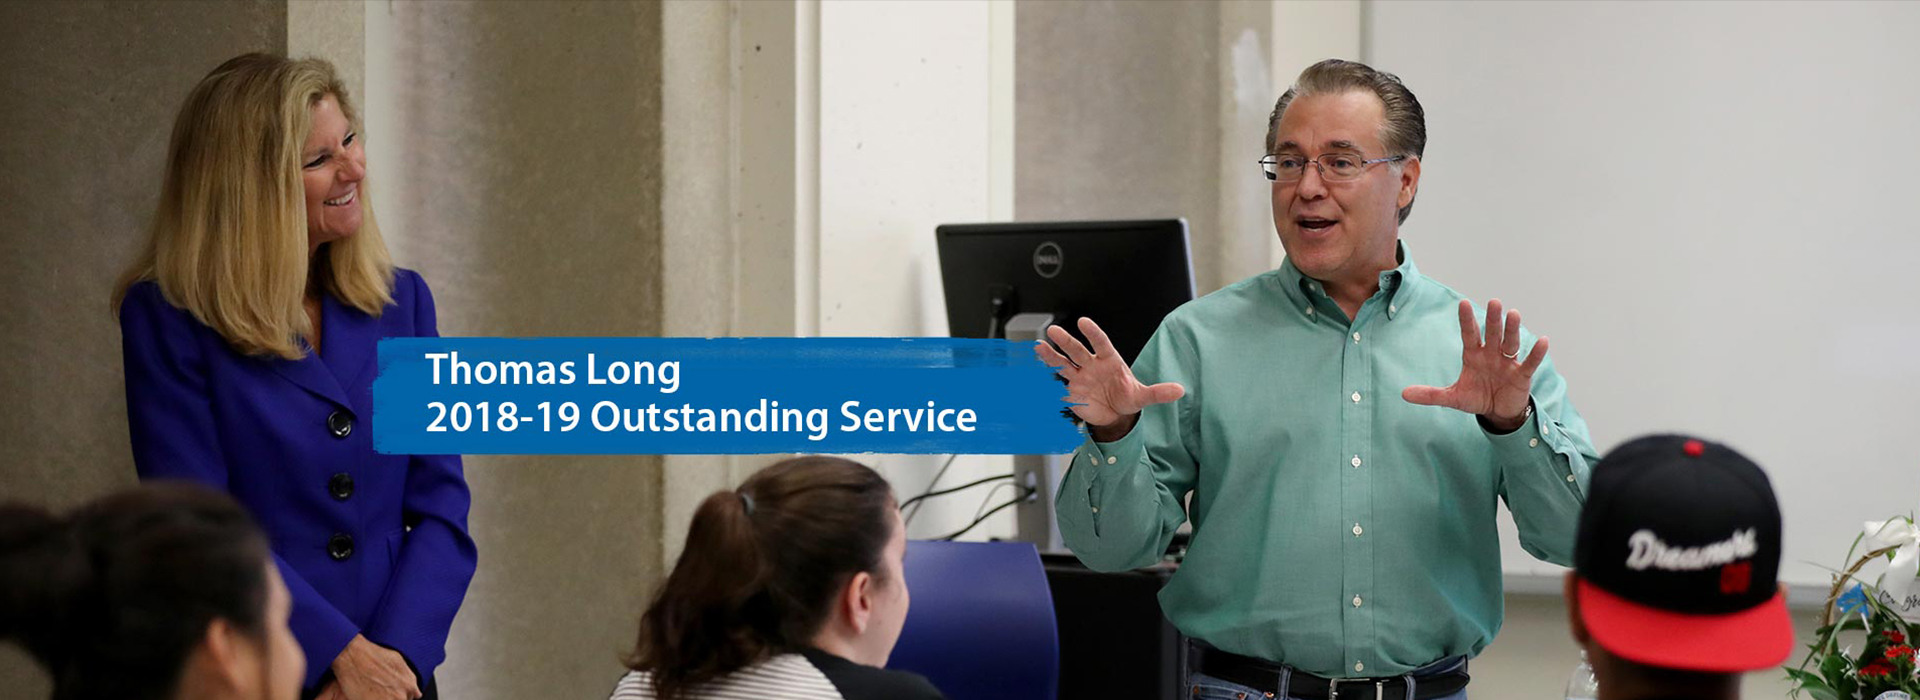 History professor surprised with the news of winning CSUSB Outstanding Service Award